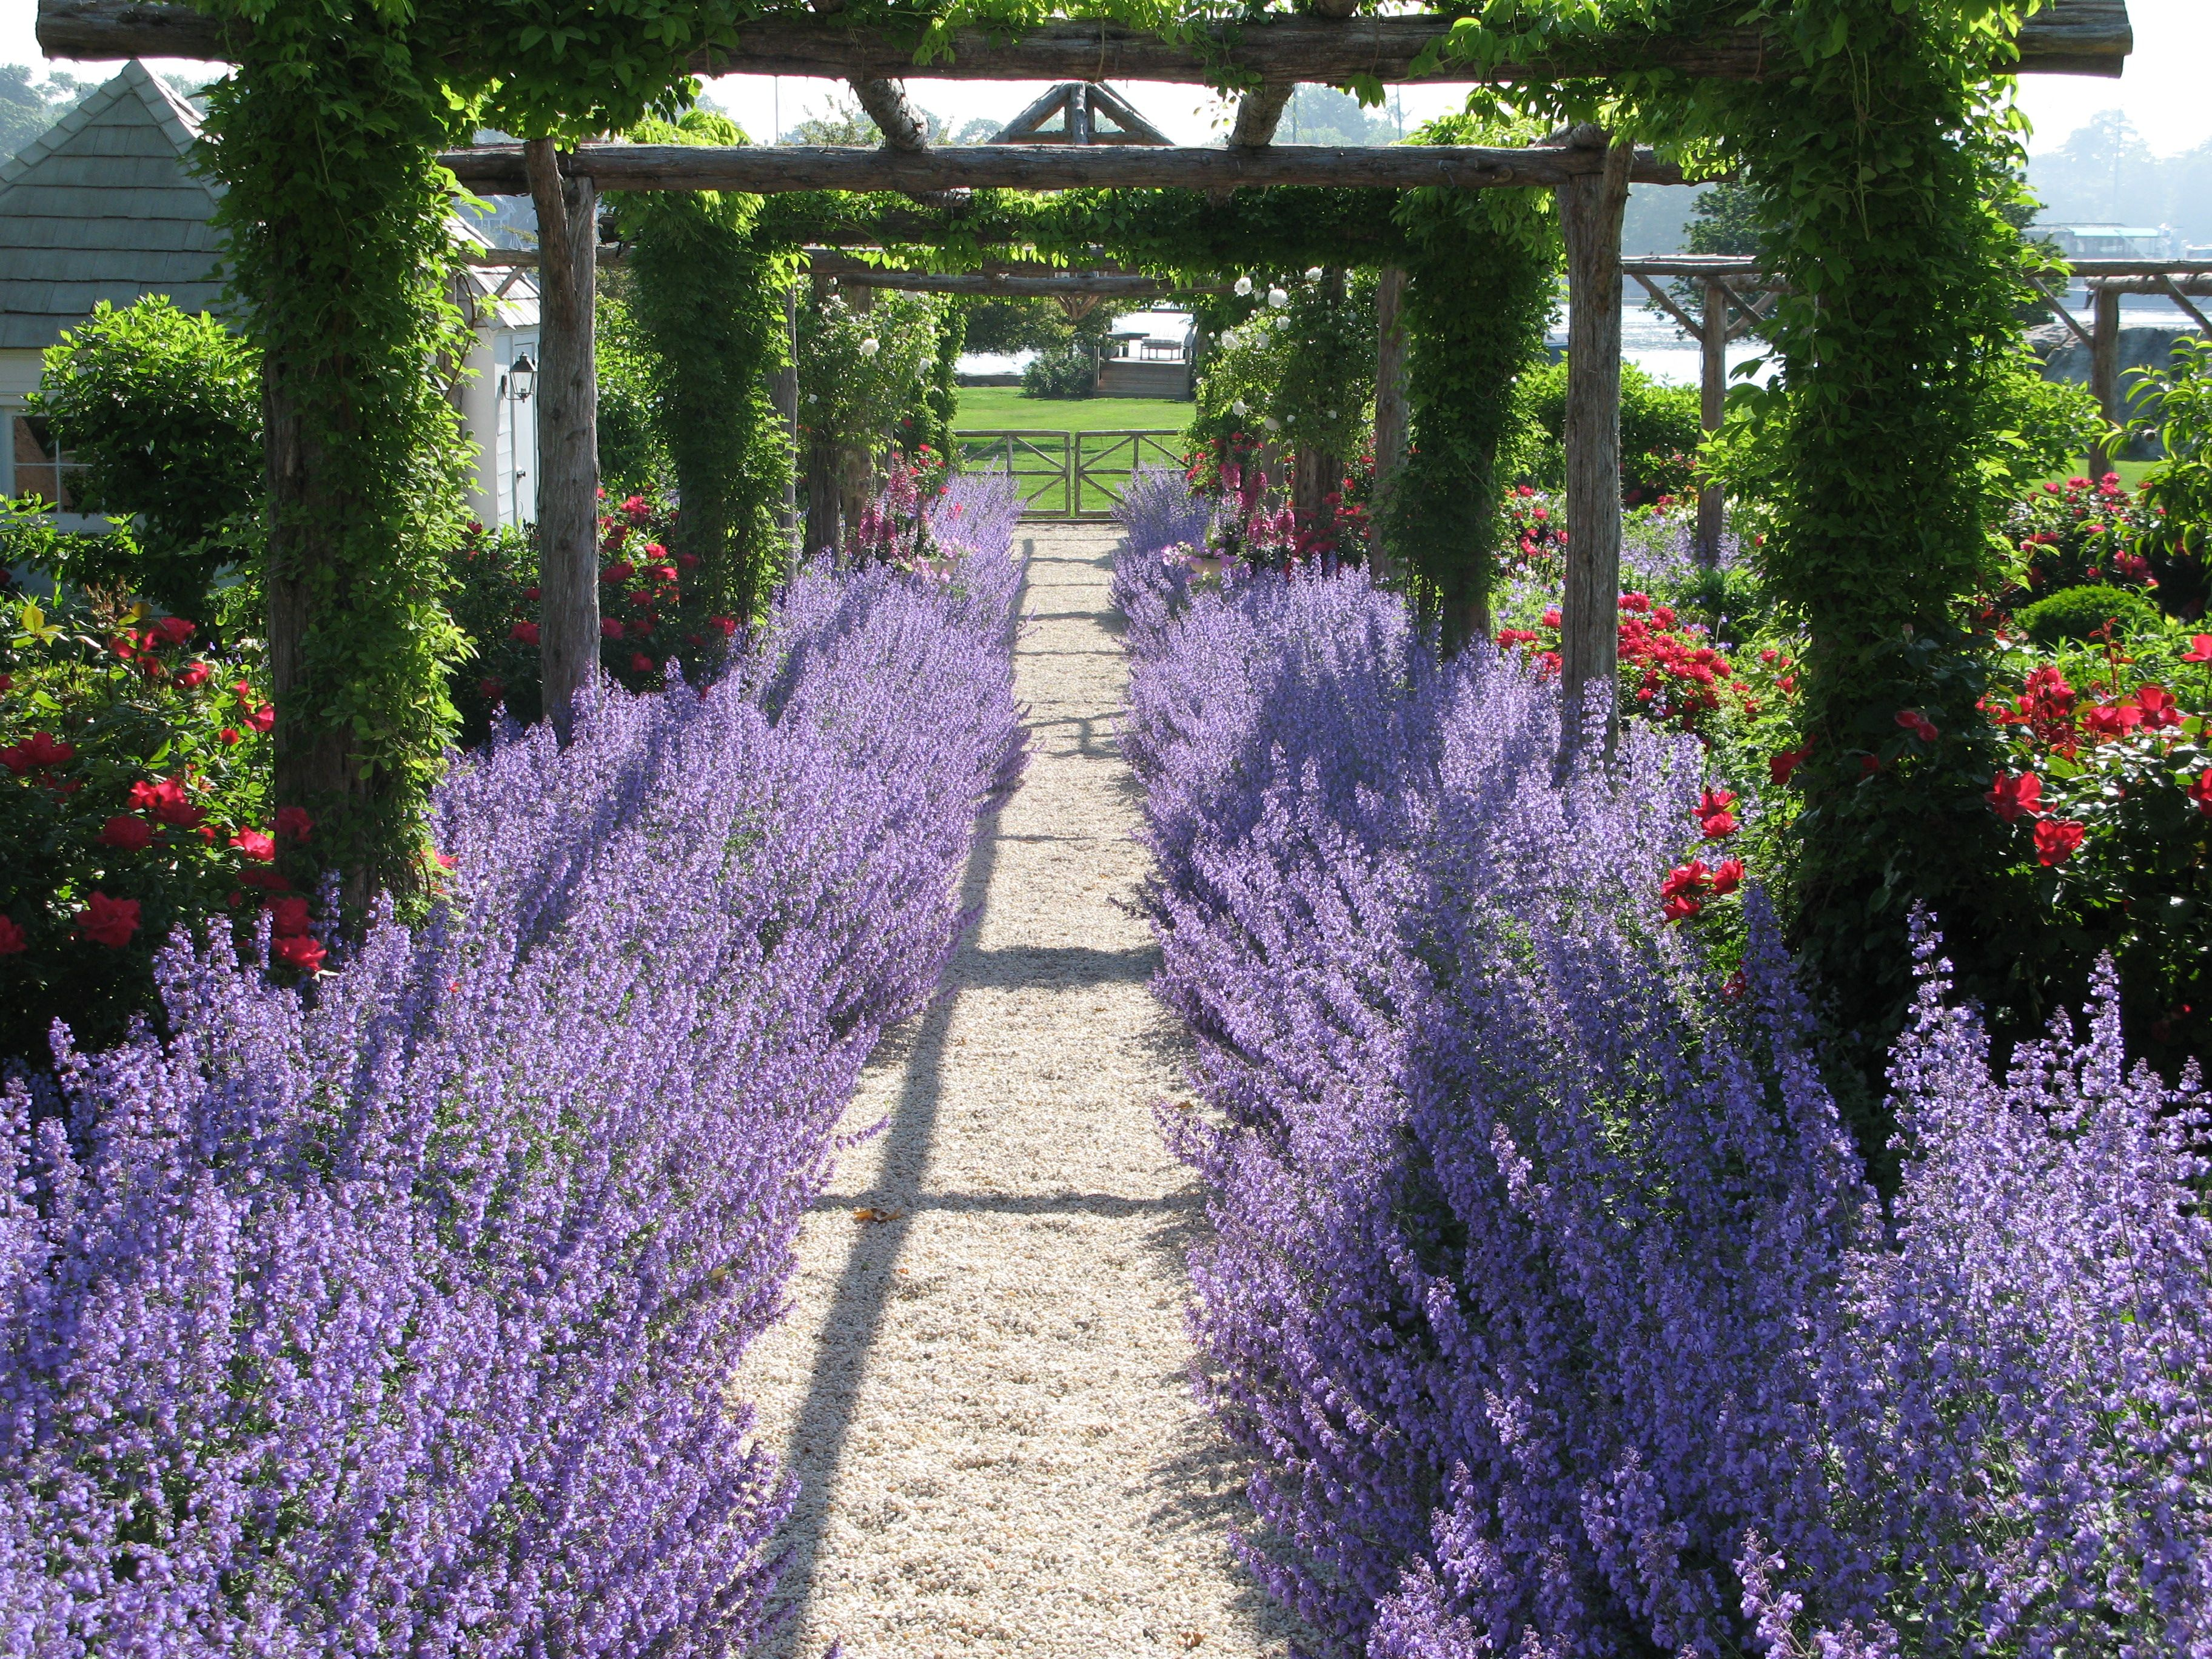 This is the entrance to my home, with beautiful lavender flowers ...